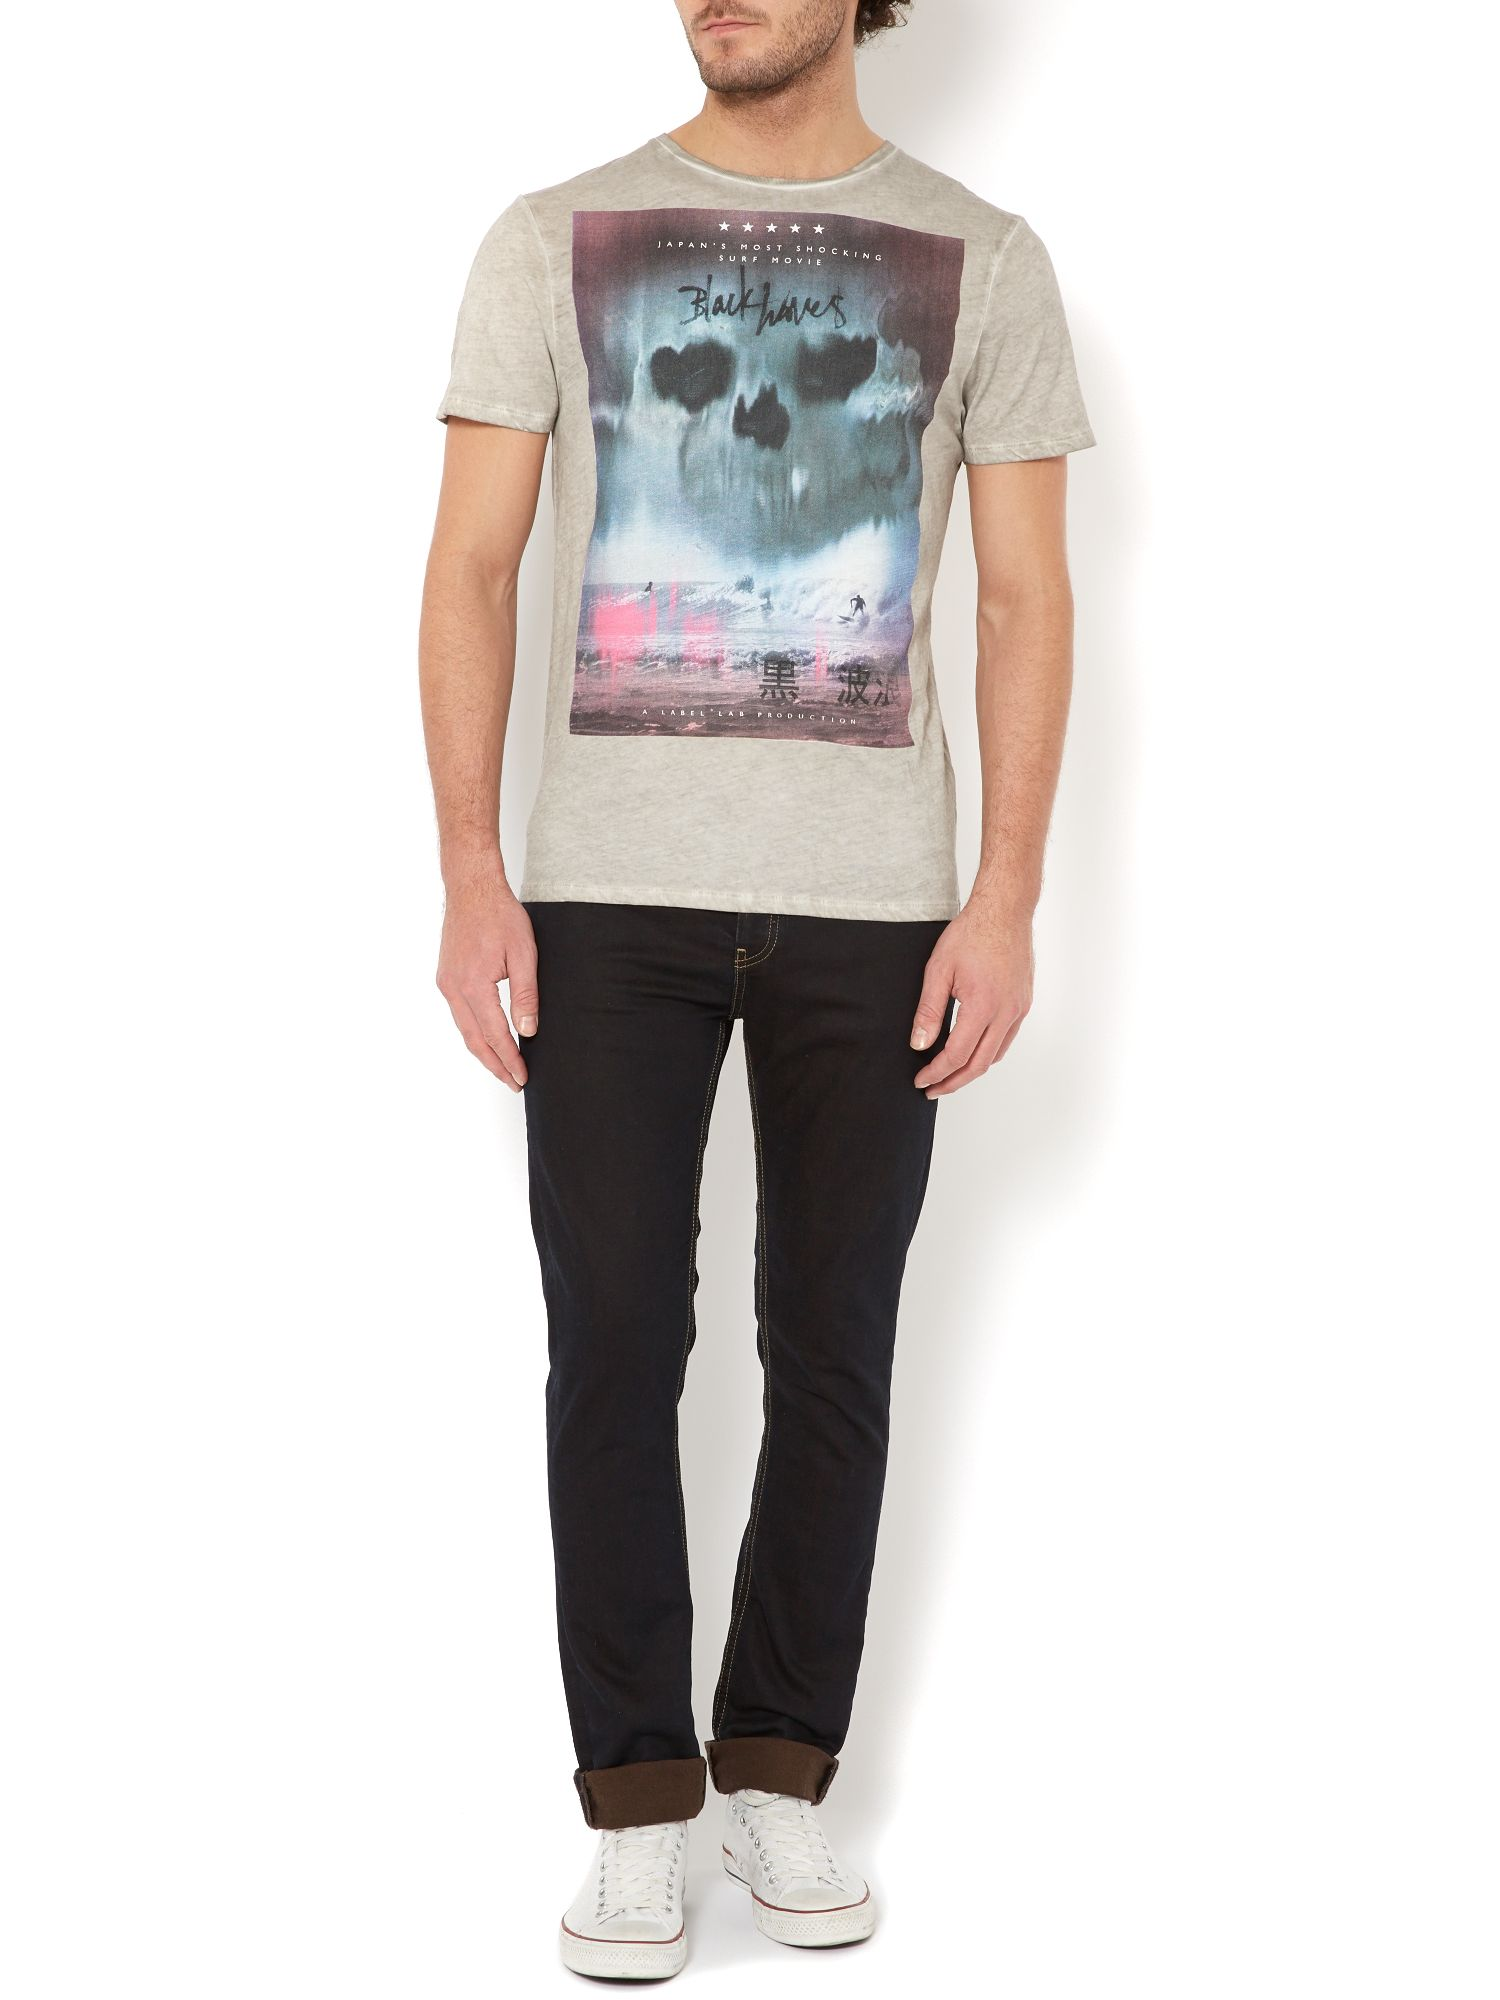 Black Waves graphic t-shirt